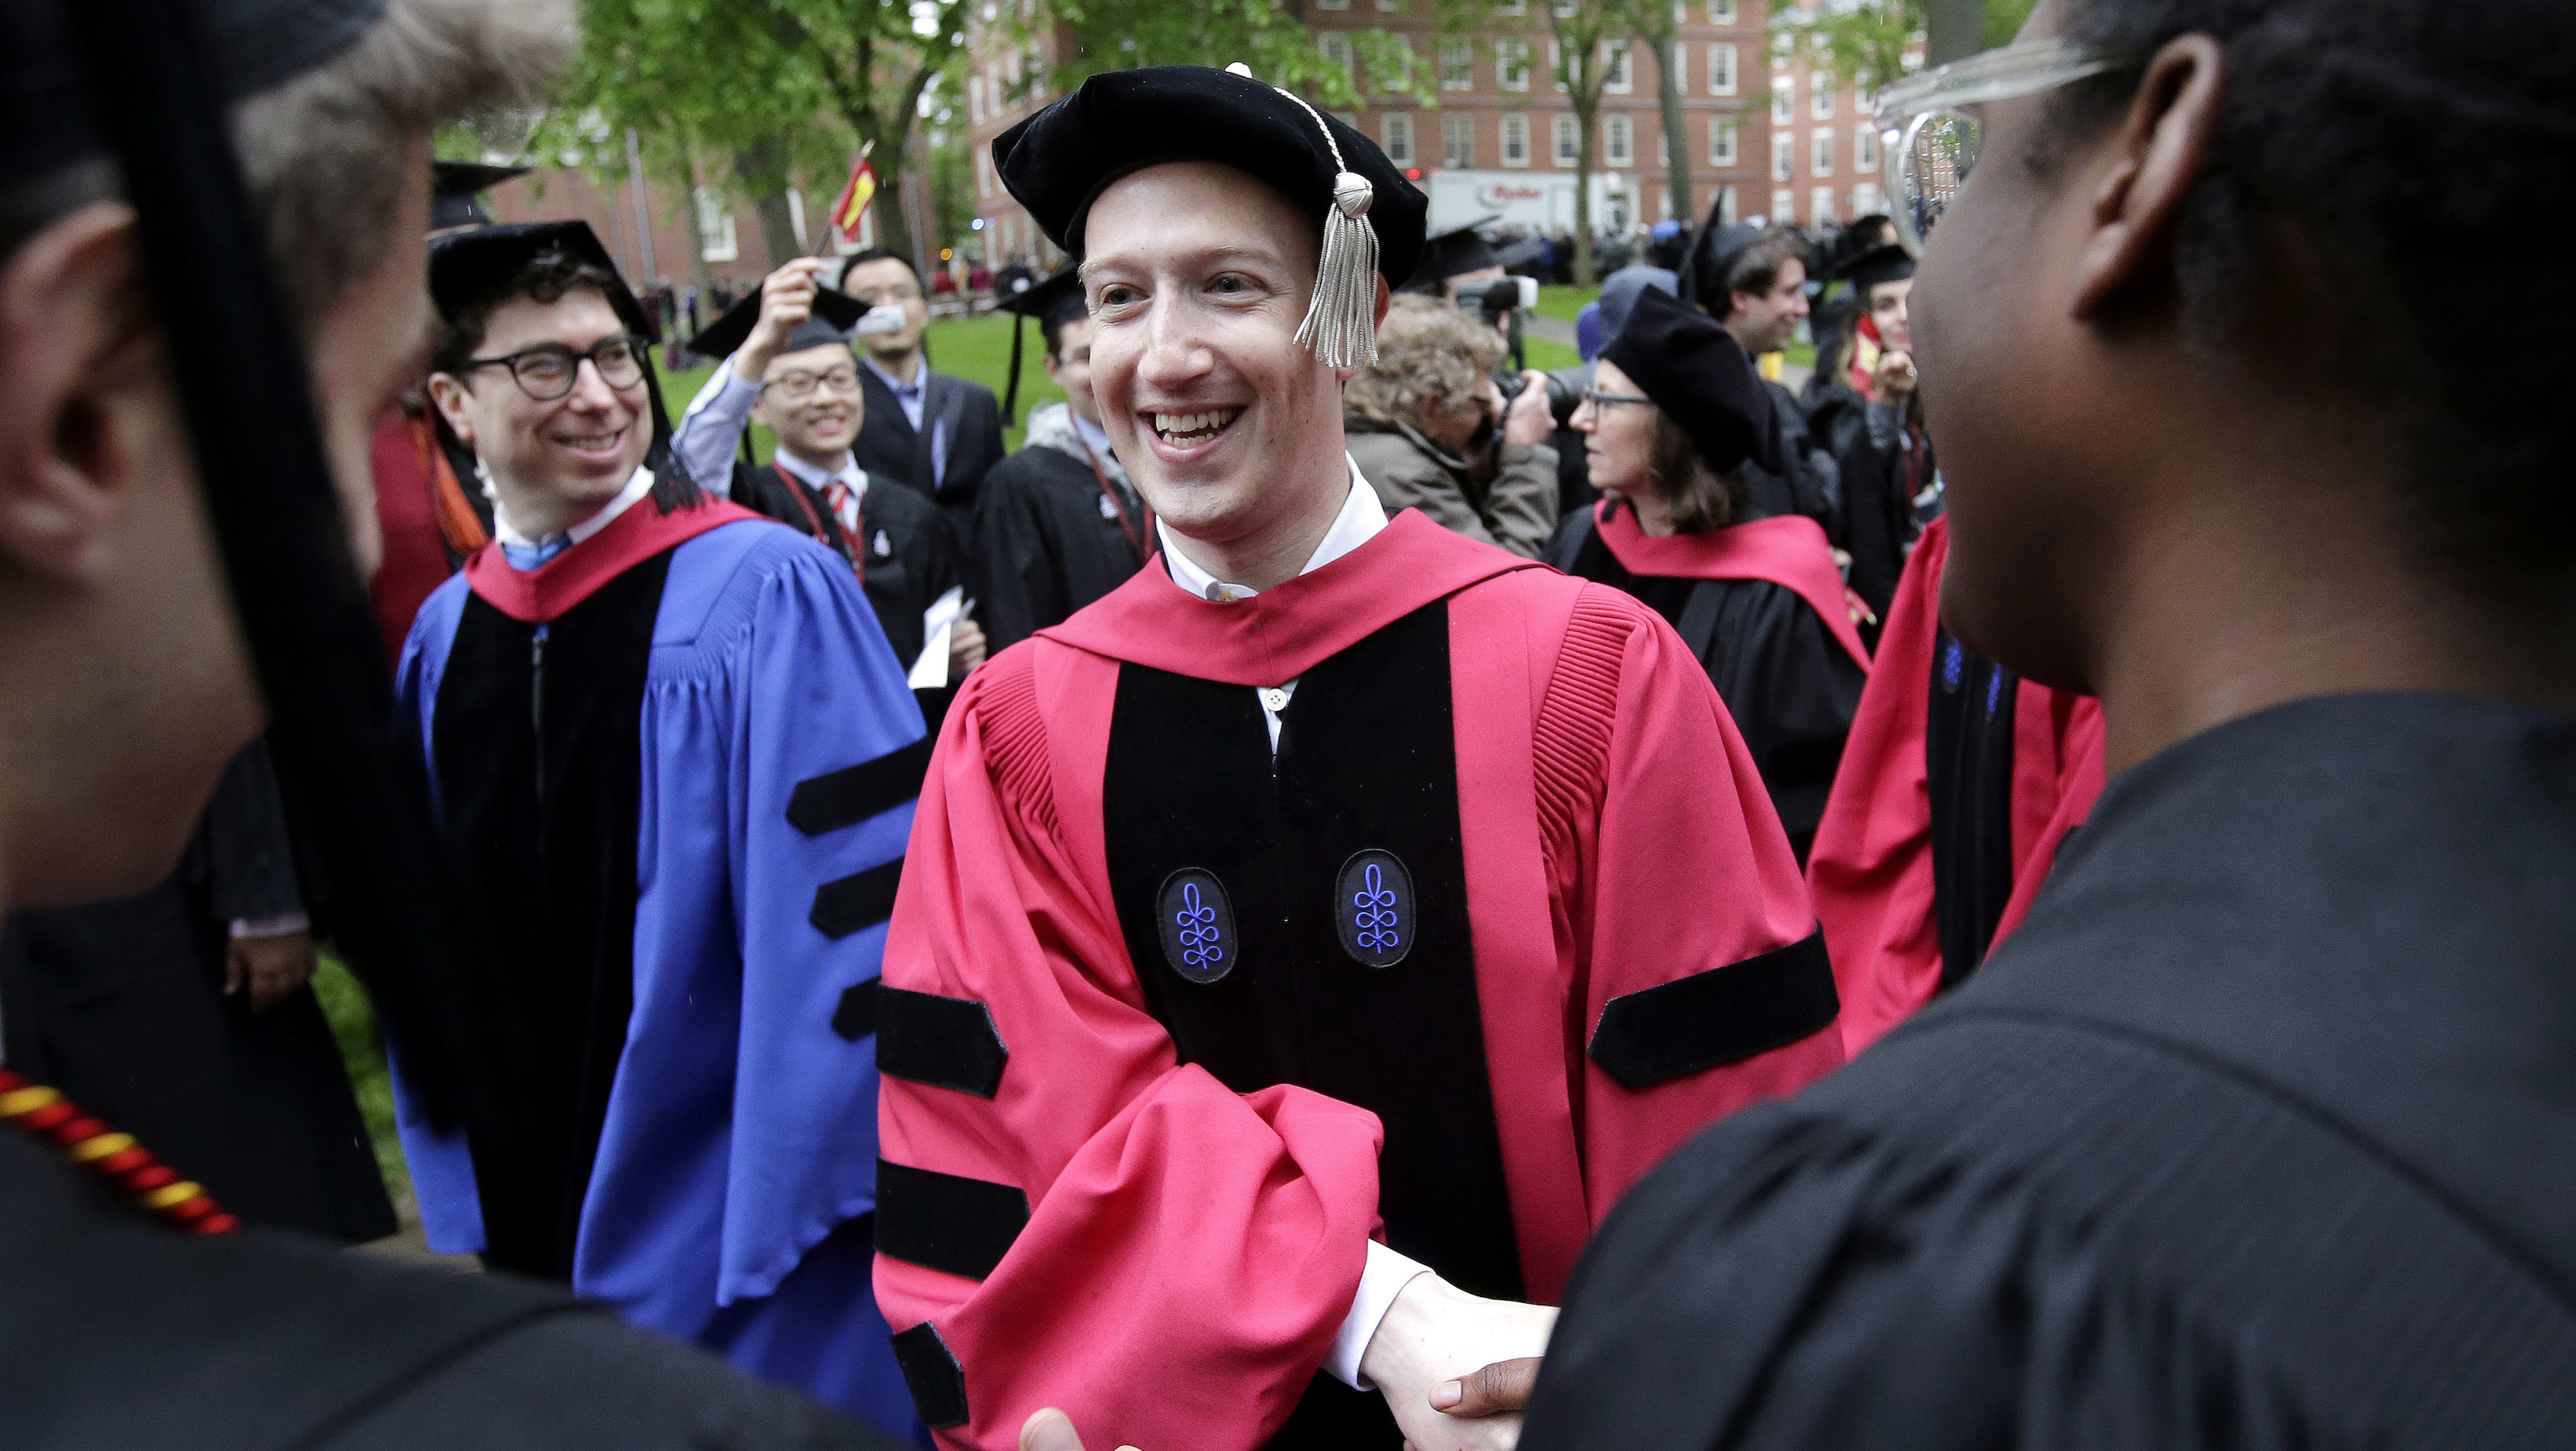 Facebook CEO and Harvard dropout Mark Zuckerberg, center, greets graduating Harvard students as he walks in a procession though Harvard Yard at the start of Harvard University commencement exercises, Thursday, May 25, 2017, in Cambridge, Mass. Zuckerberg is giving a commencement address at Harvard, where he dropped out 12 years ago to focus on Facebook. (AP Photo/Steven Senne)